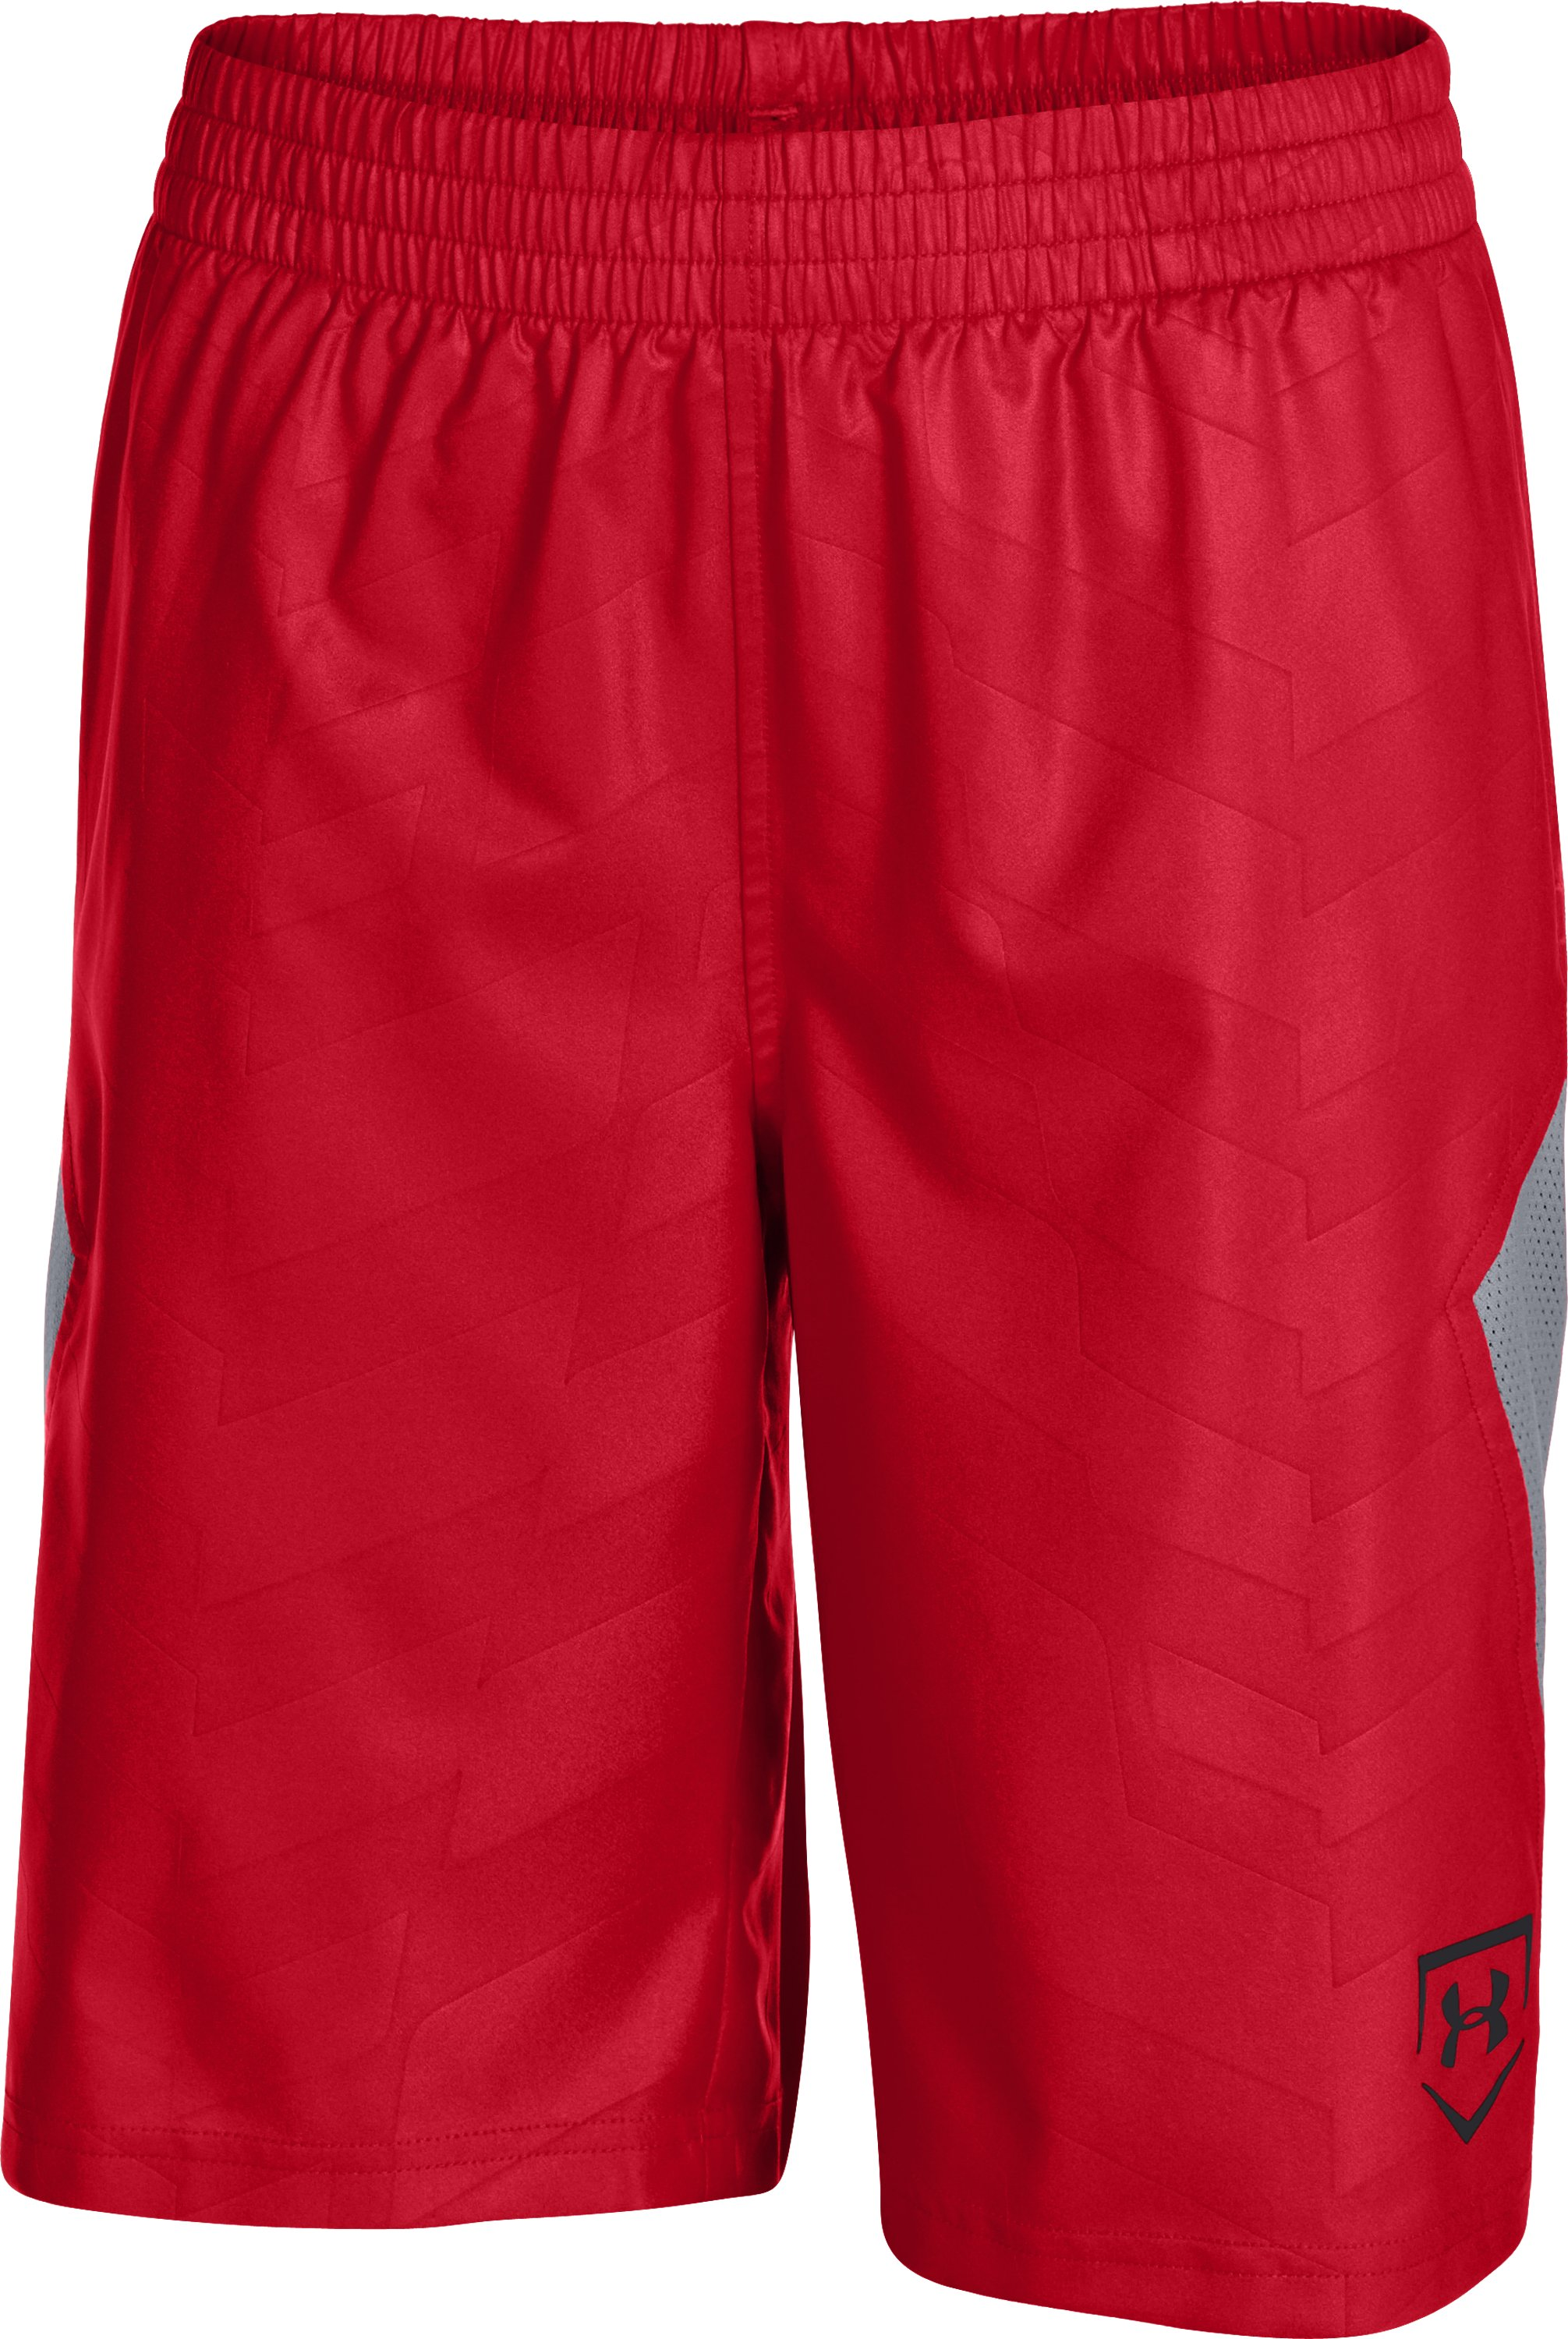 Boys' UA CTG Baseball Training Shorts, Red